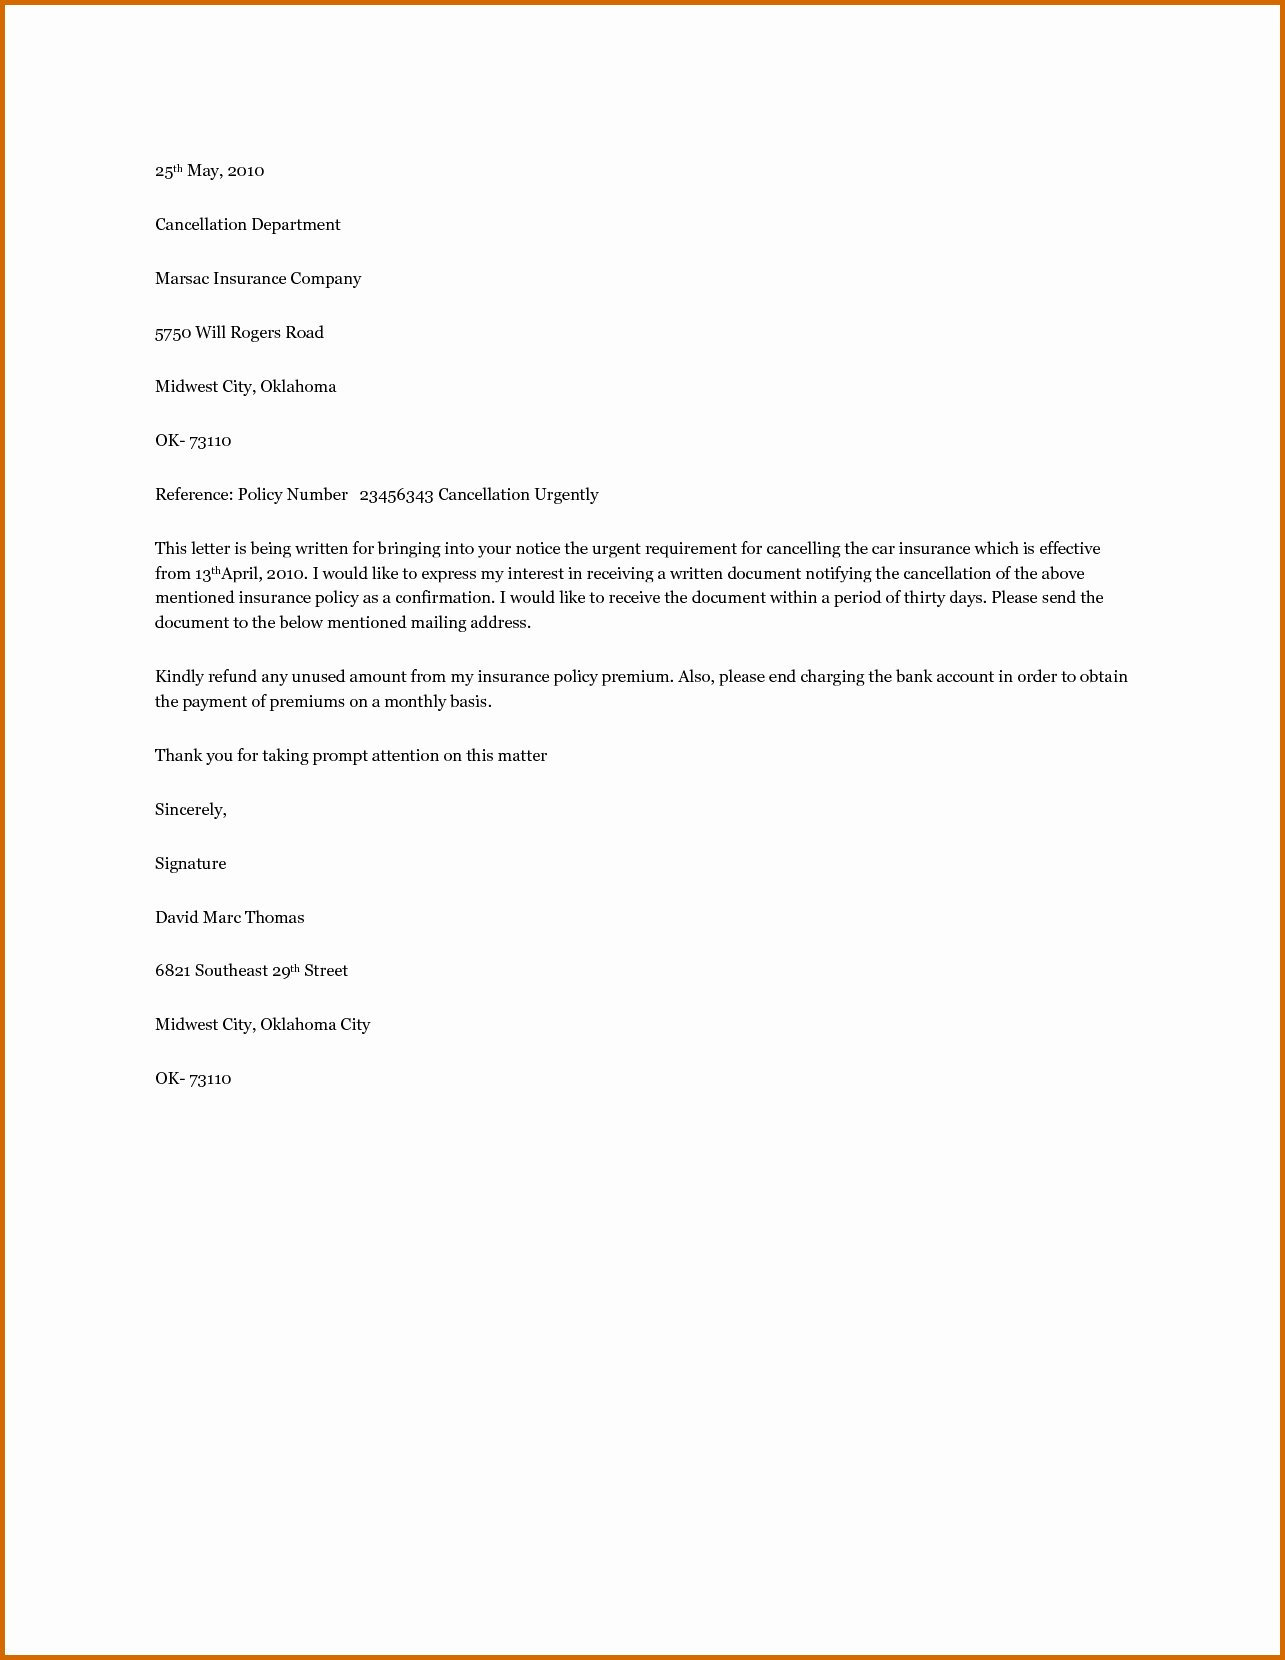 Insurance Cancellation Letter Template Awesome Car Insurance Cancellation Letter Template Samples